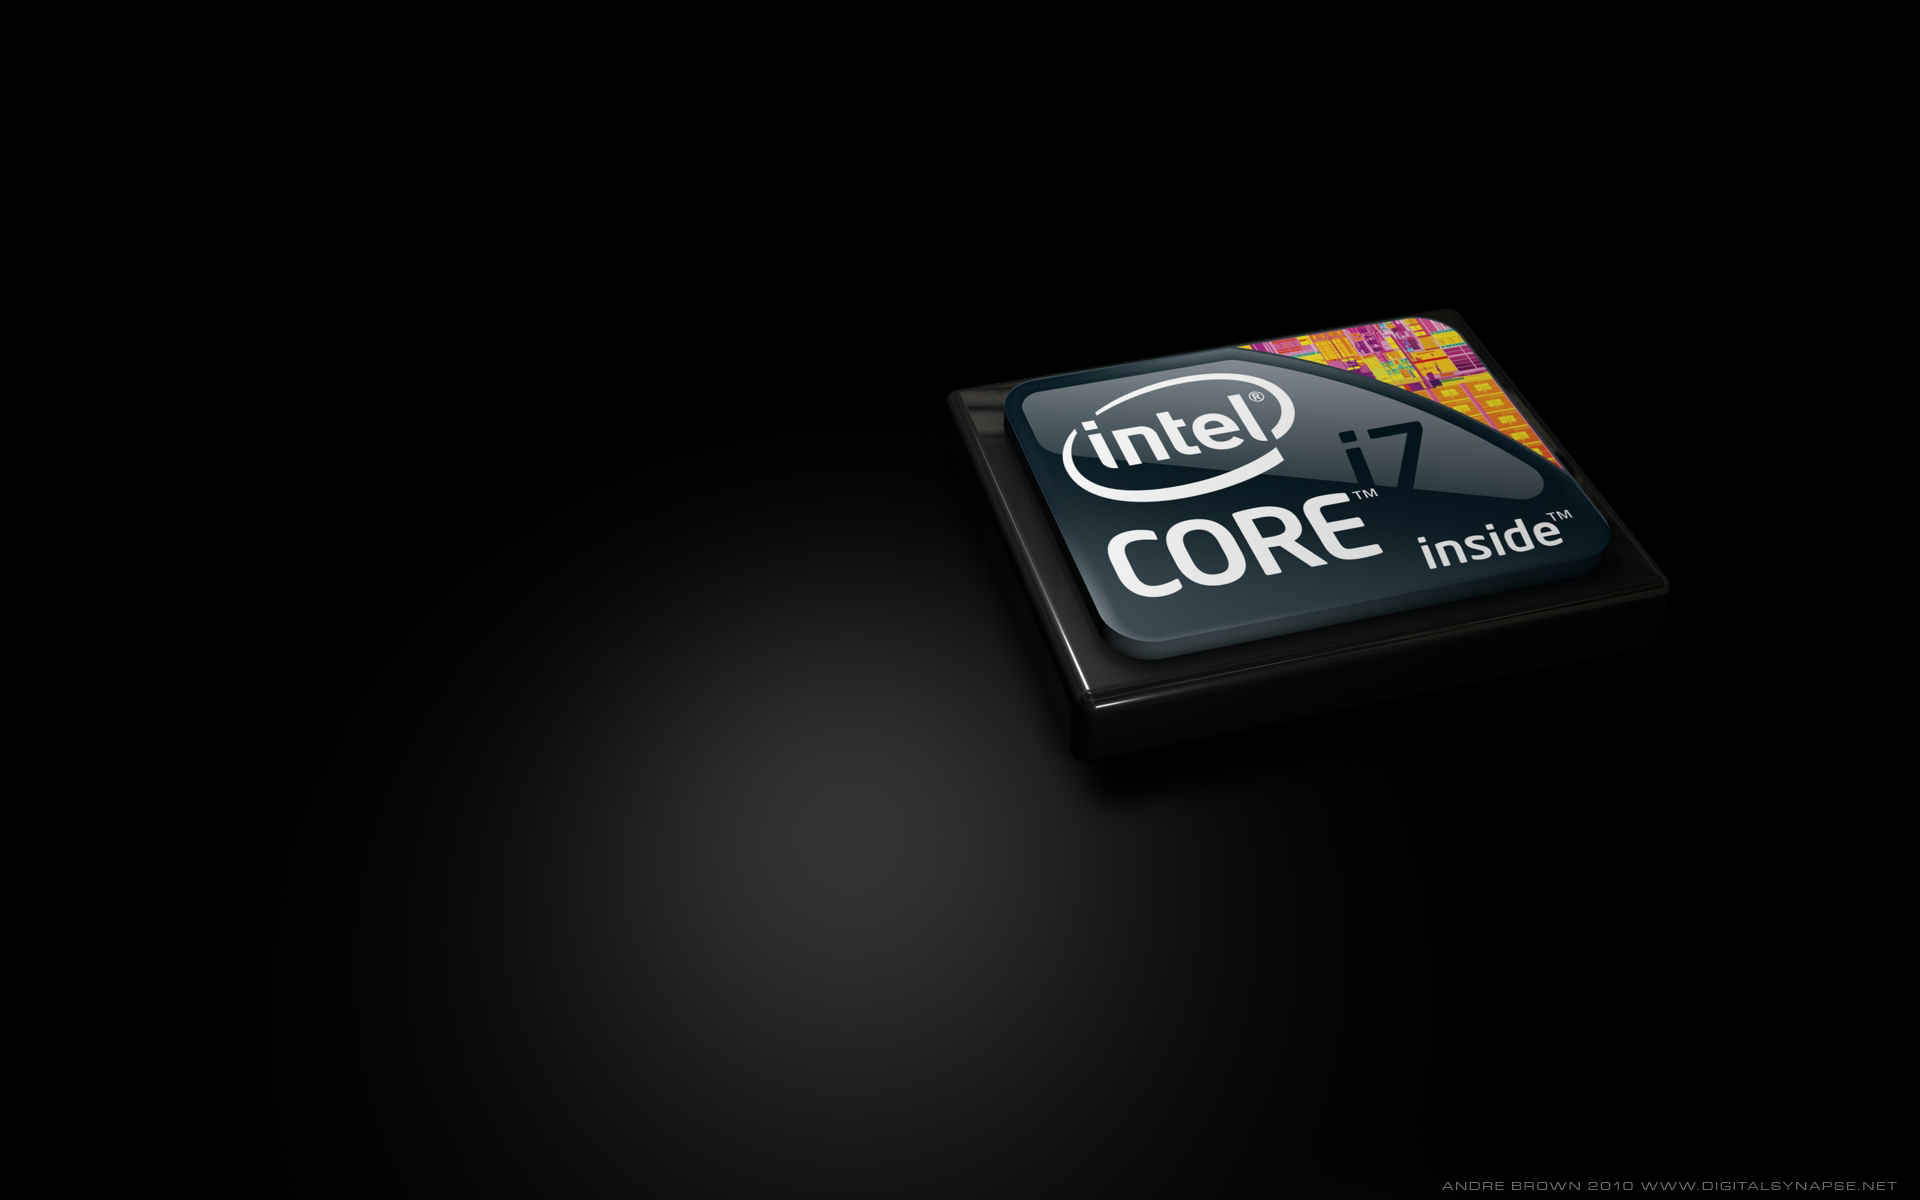 Intel Logo Wallpaper Awesome Resolution x5mch75a Yoanu 1920x1200